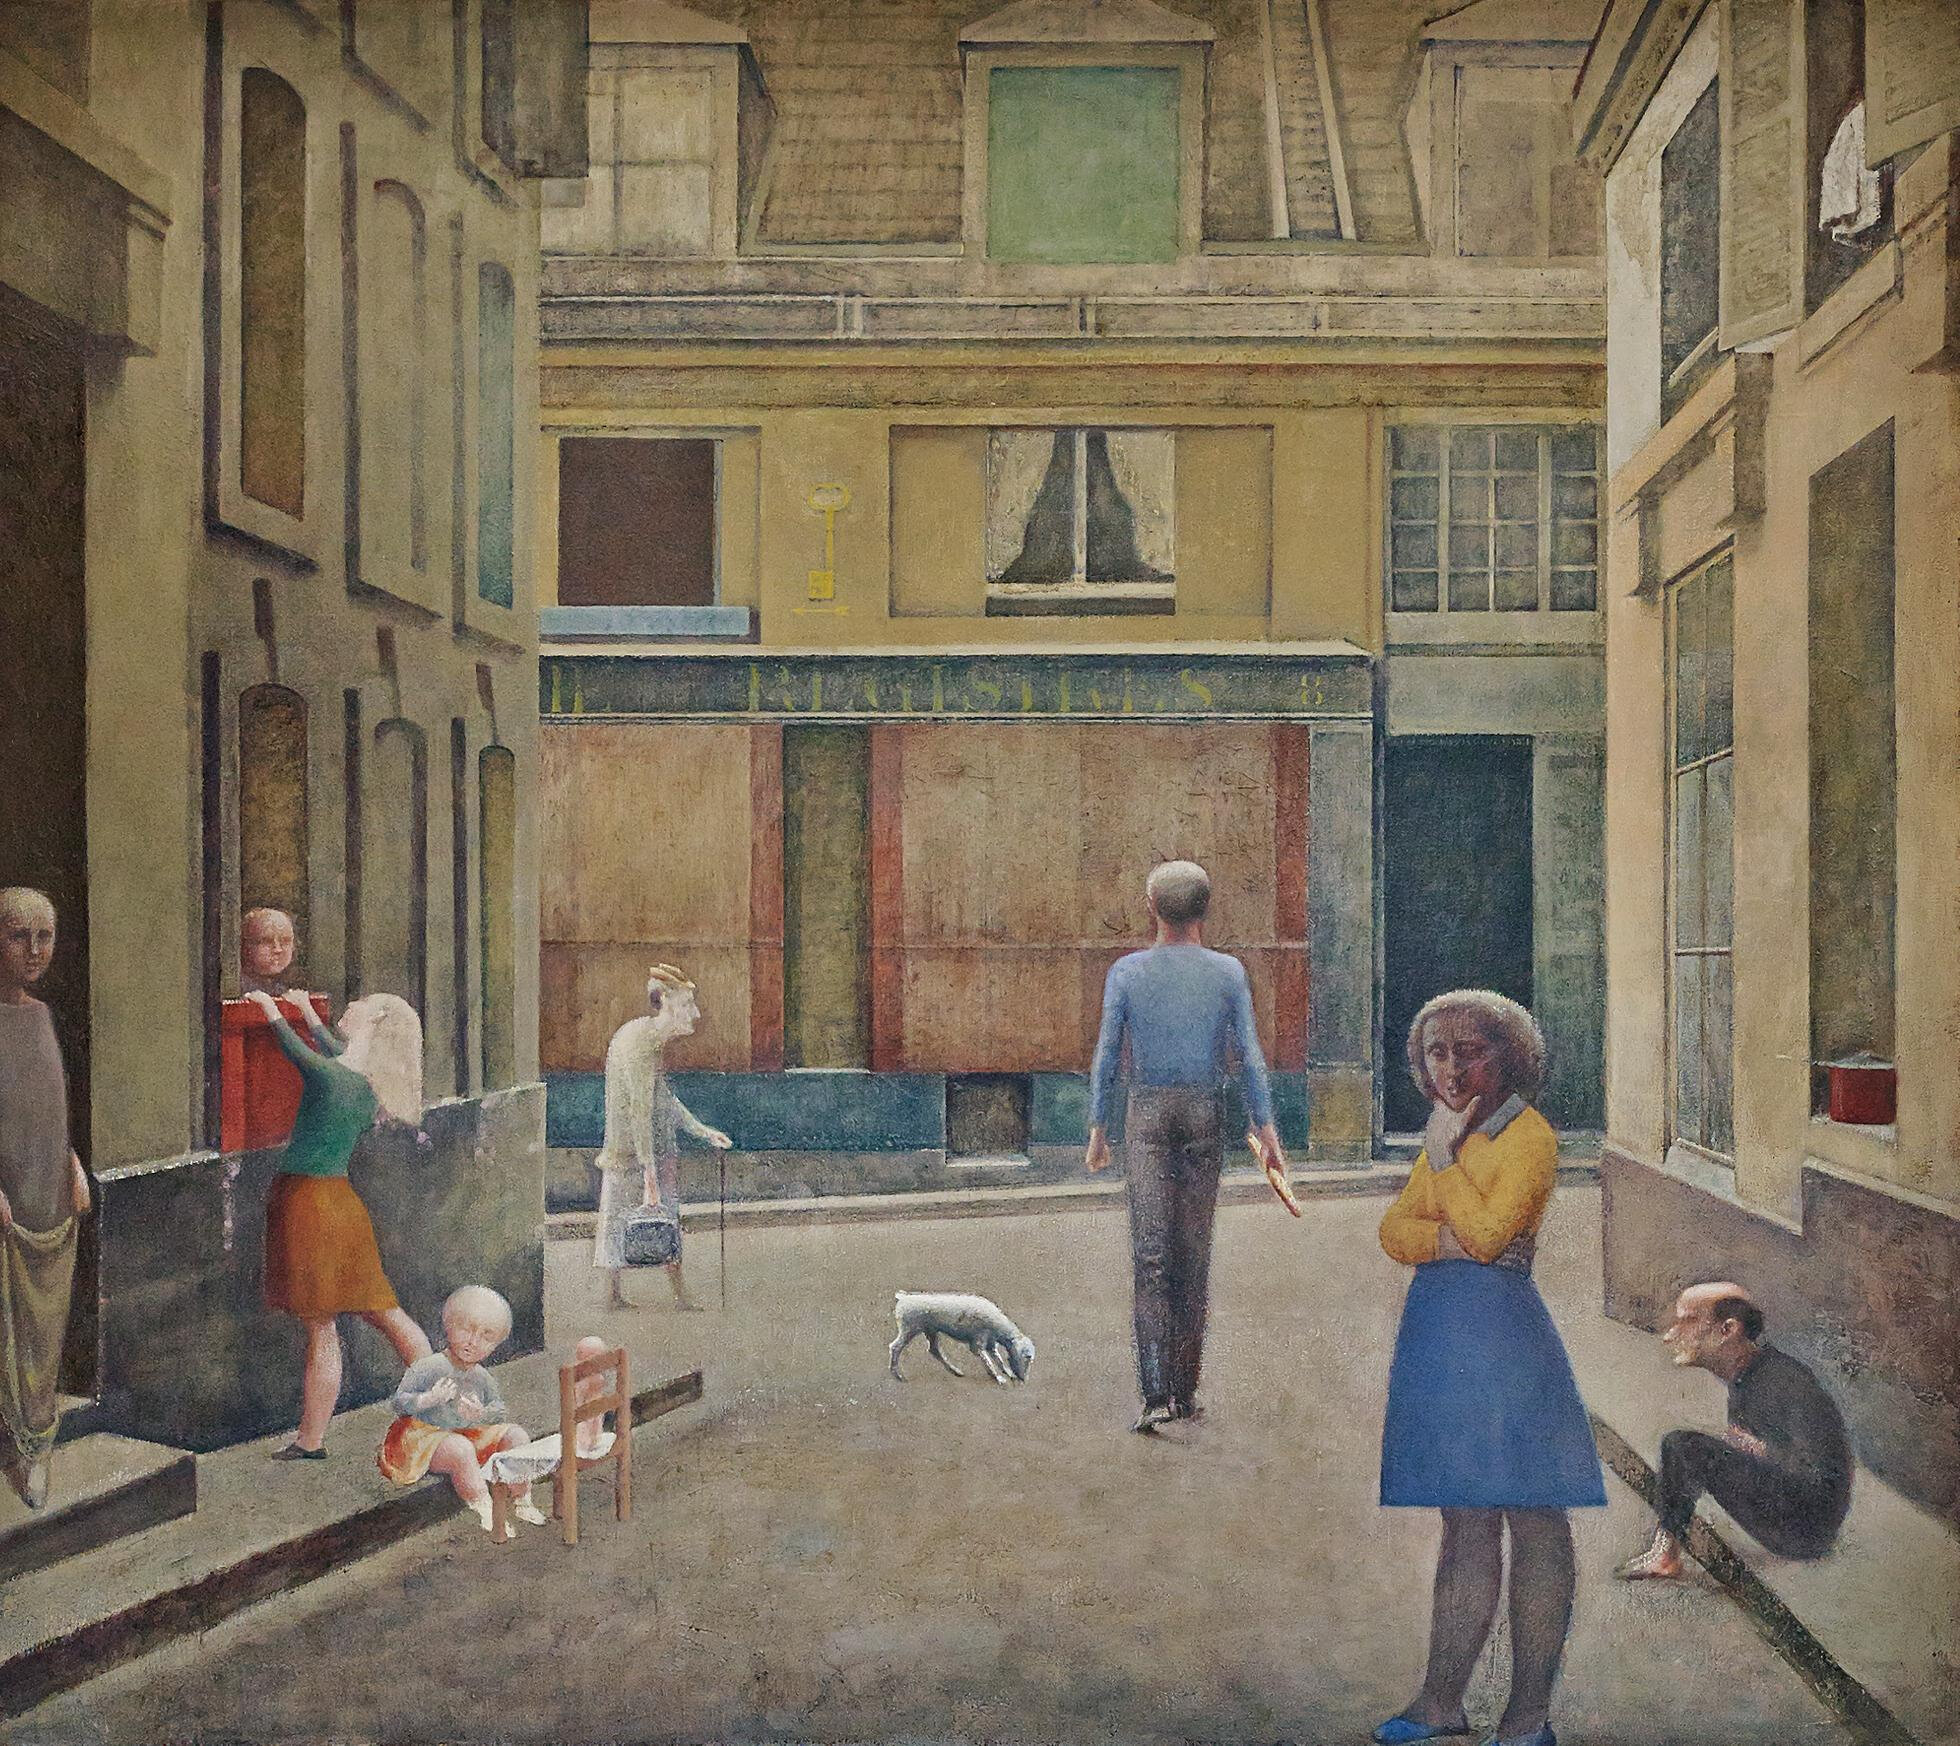 La Chambre Turque Balthus Retrospective Is The First Exhibition Devoted To Balthus By A